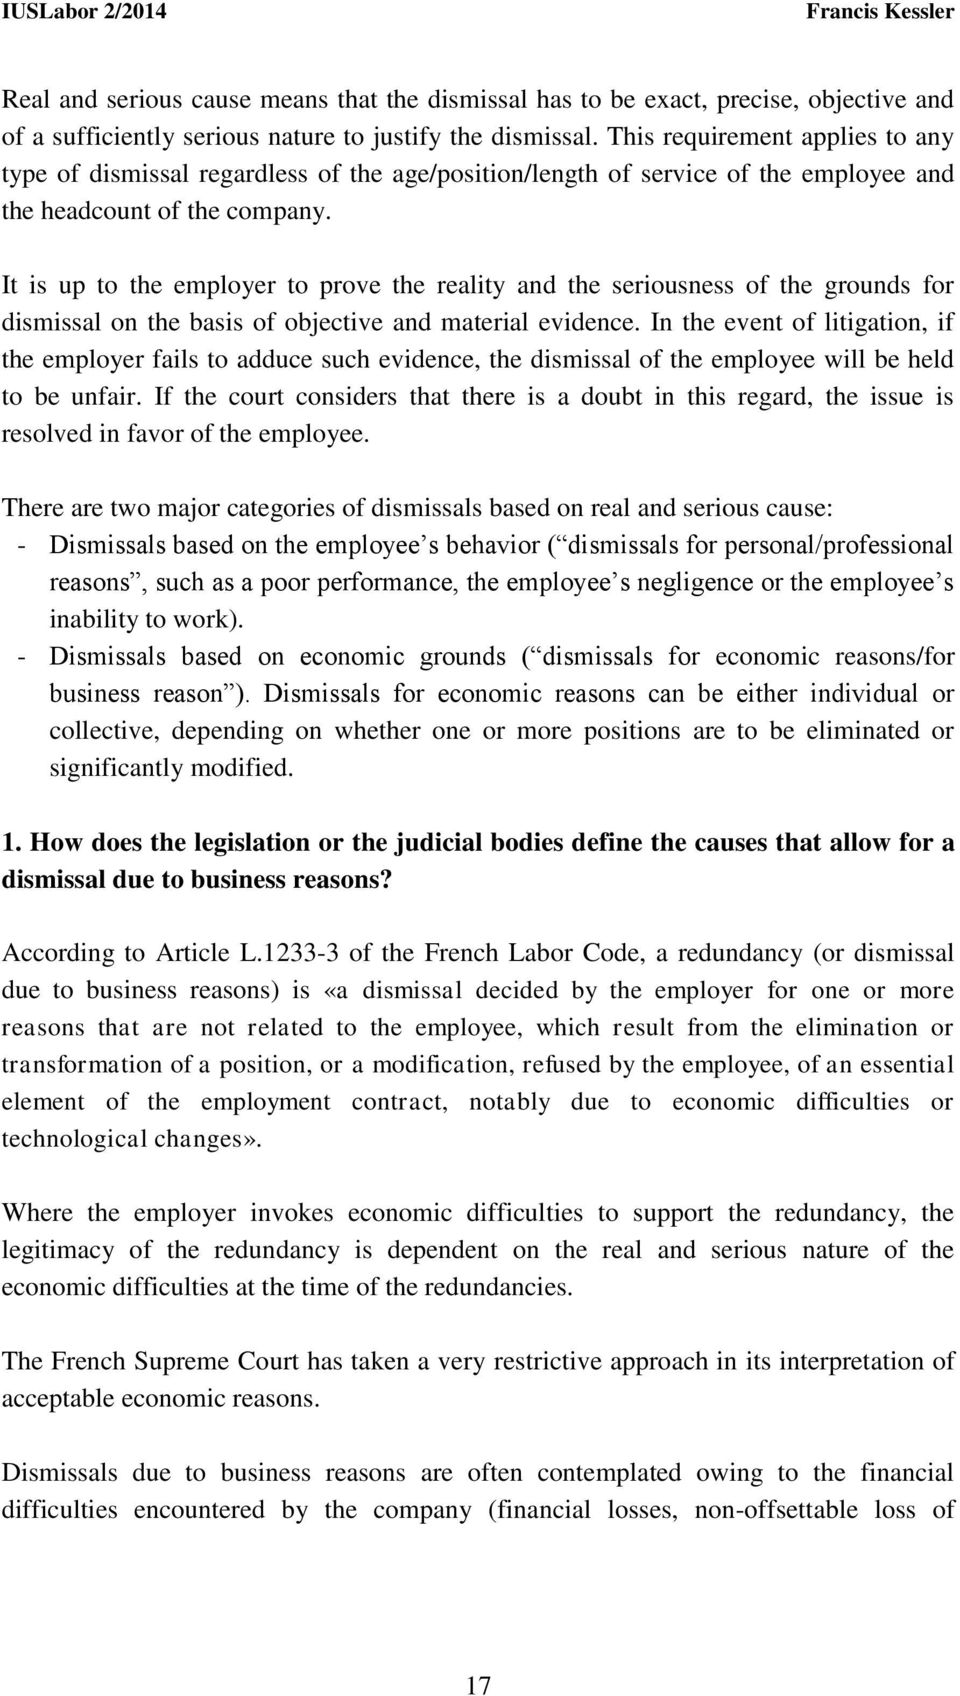 It is up to the employer to prove the reality and the seriousness of the grounds for dismissal on the basis of objective and material evidence.